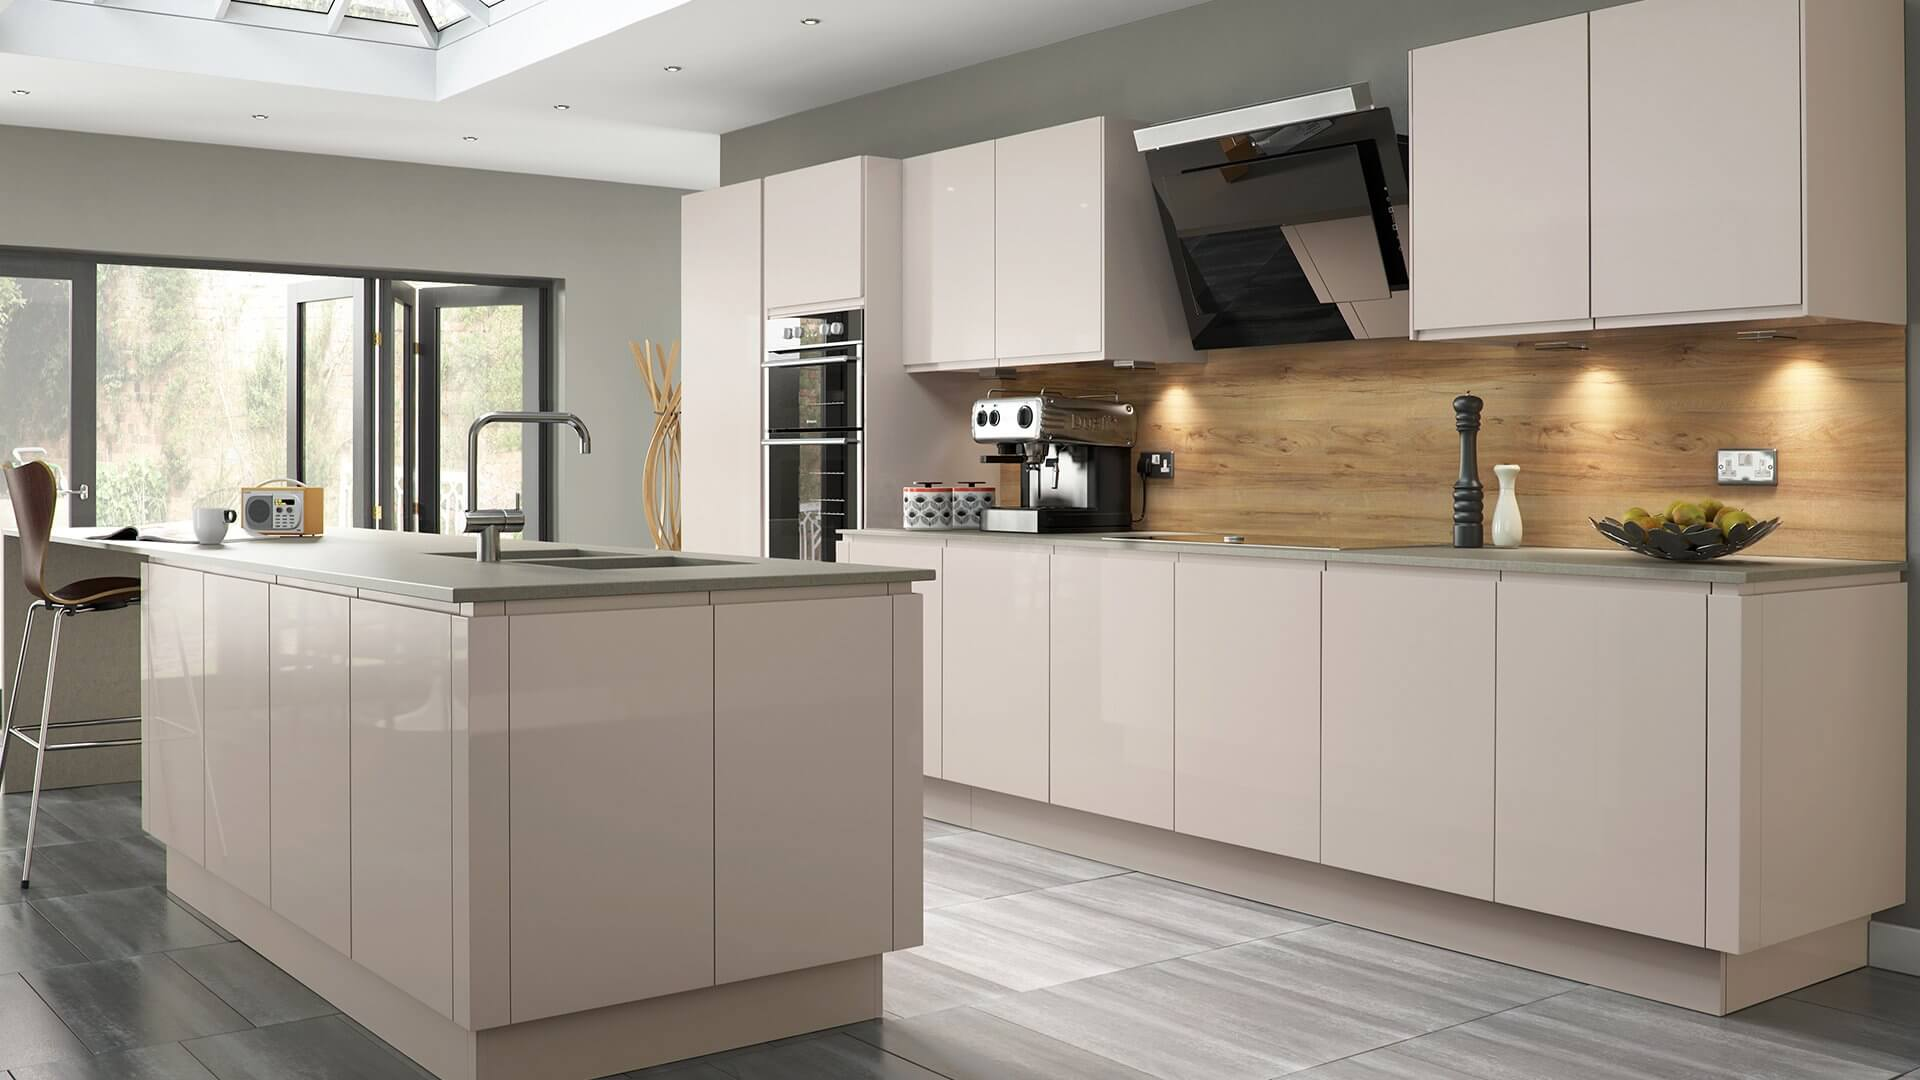 designer kitchen units designer kitchens in stoke mode kitchens 0178 261 0999 764